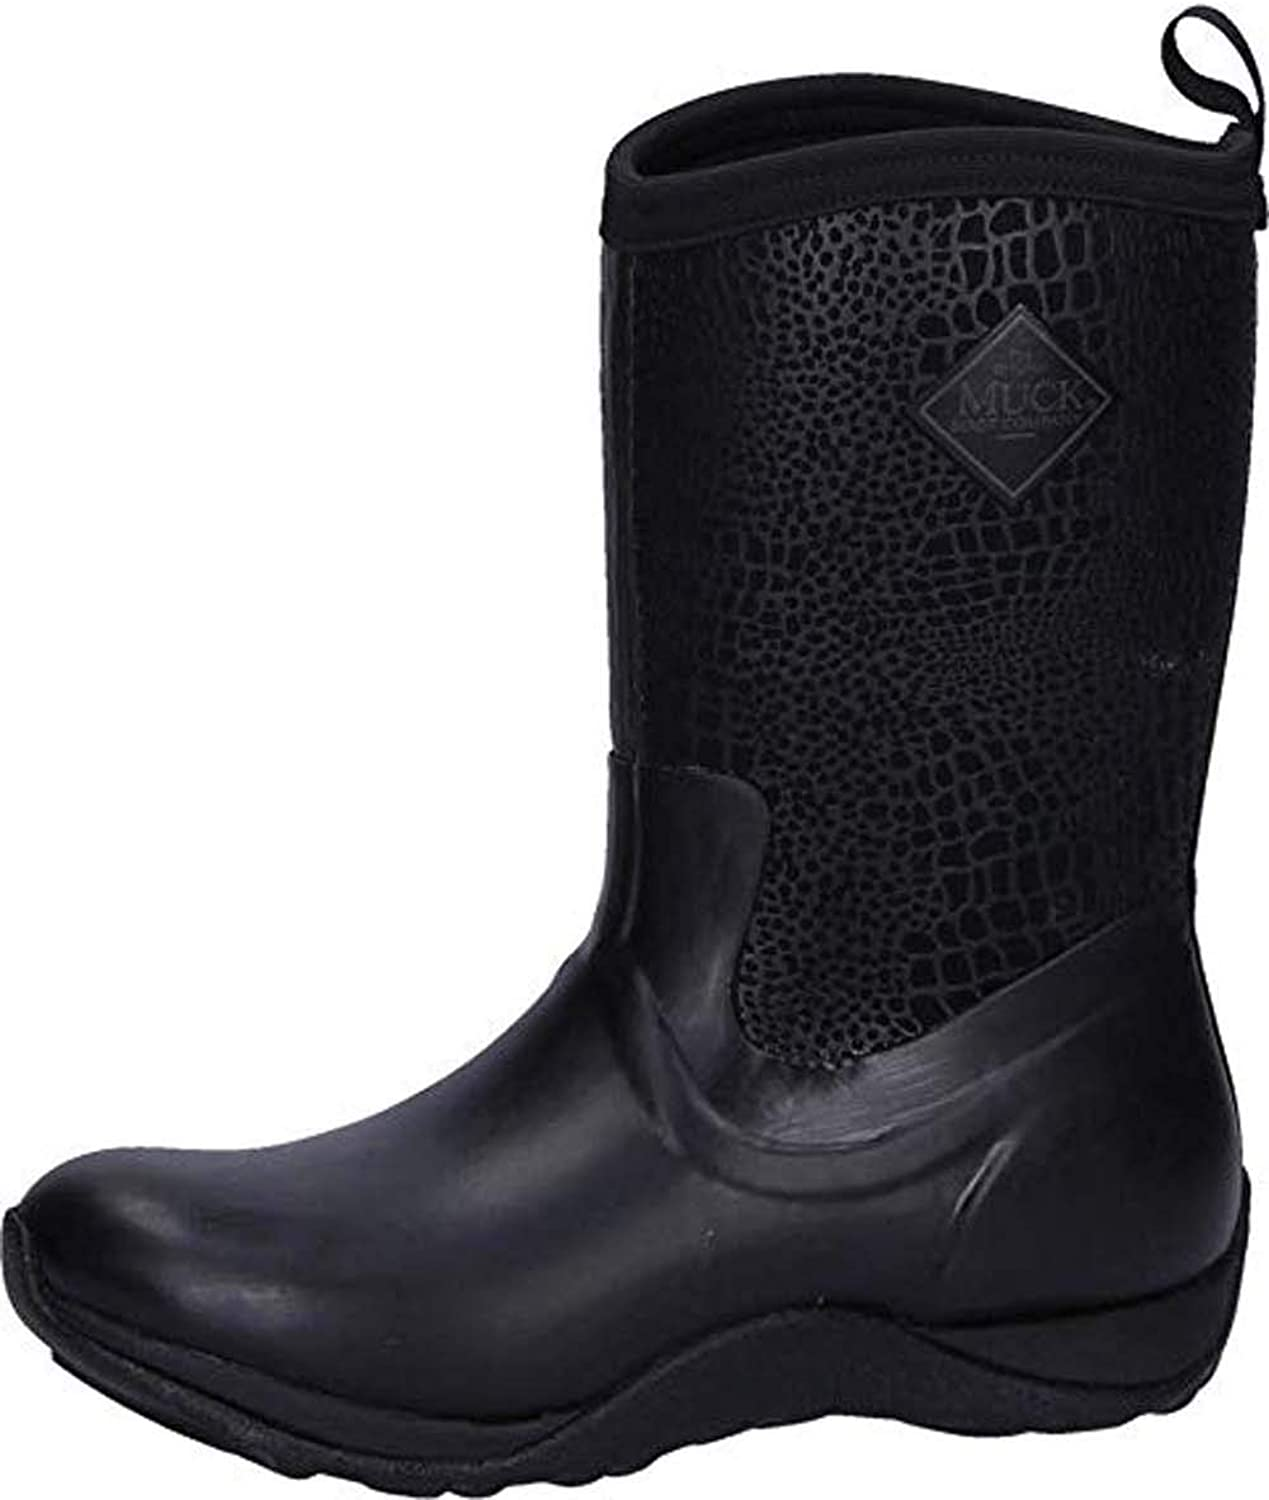 Muck Boots Womens Arctic Weekend Boot